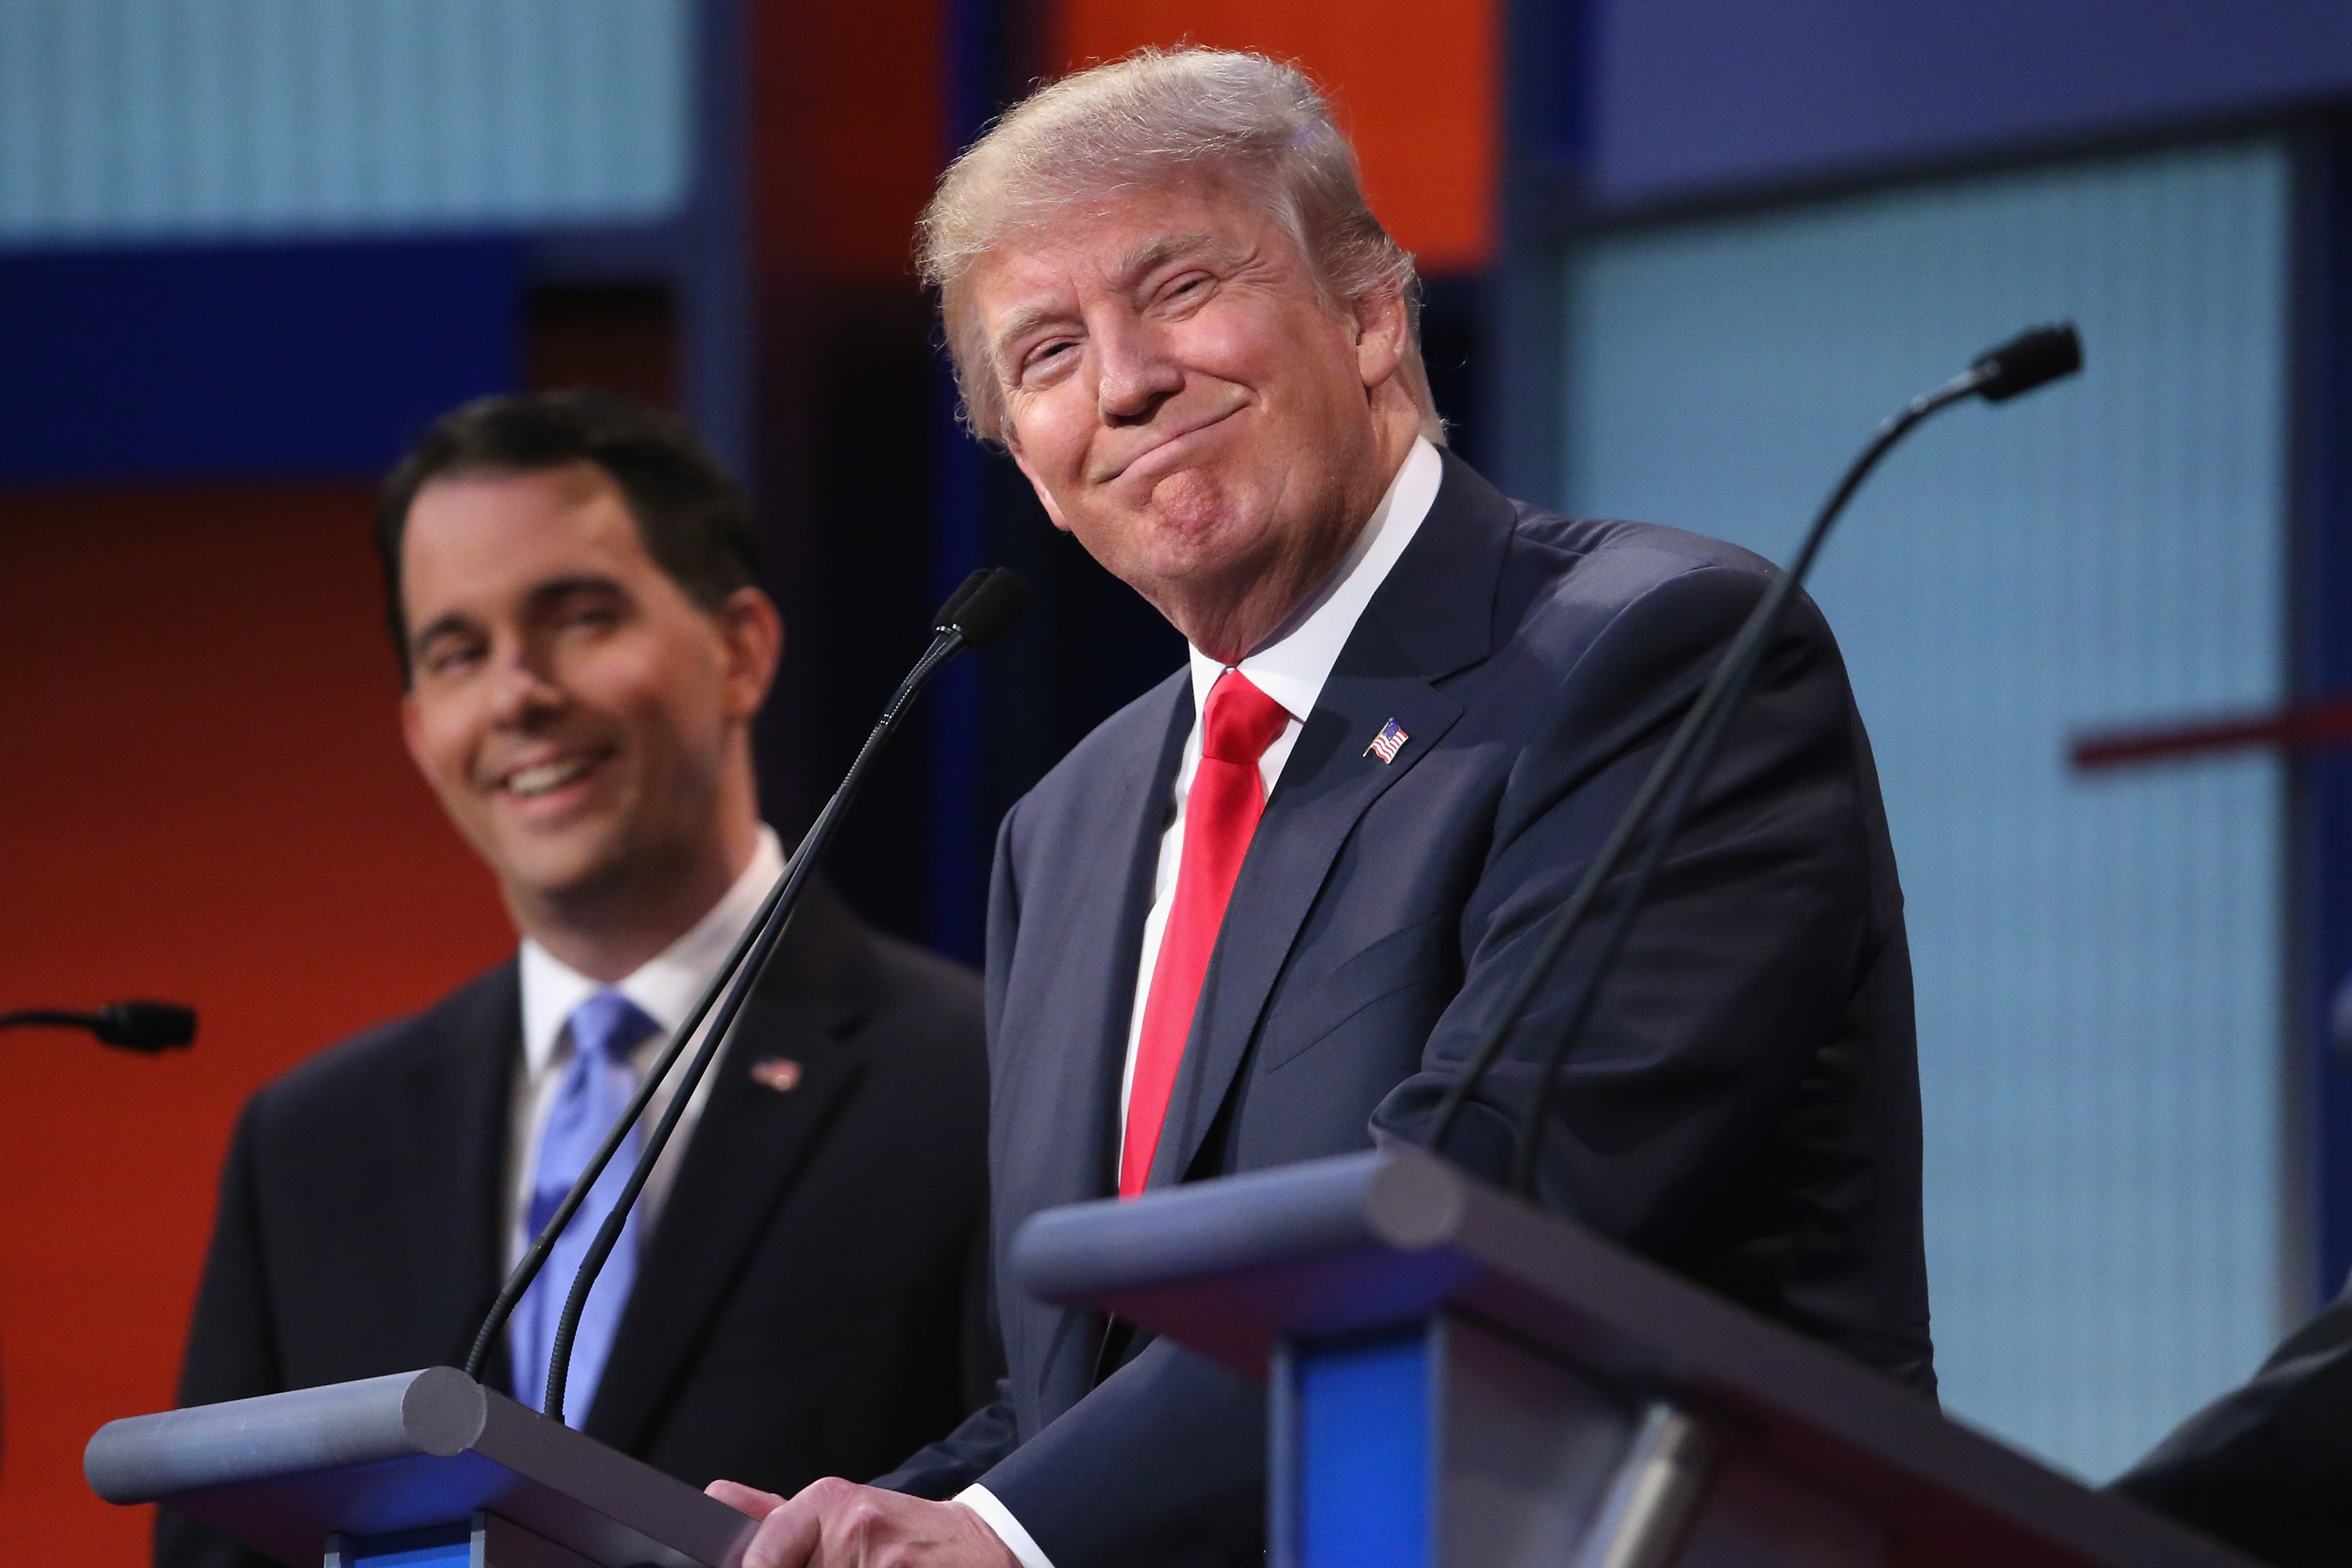 Republican presidential candidates Donald Trump (R) and Wisconsin Gov. Scott Walker participate in the first prime-time presidential debate hosted by FOX News and Facebook at the Quicken Loans Arena August 6, 2015 in Cleveland, Ohio.